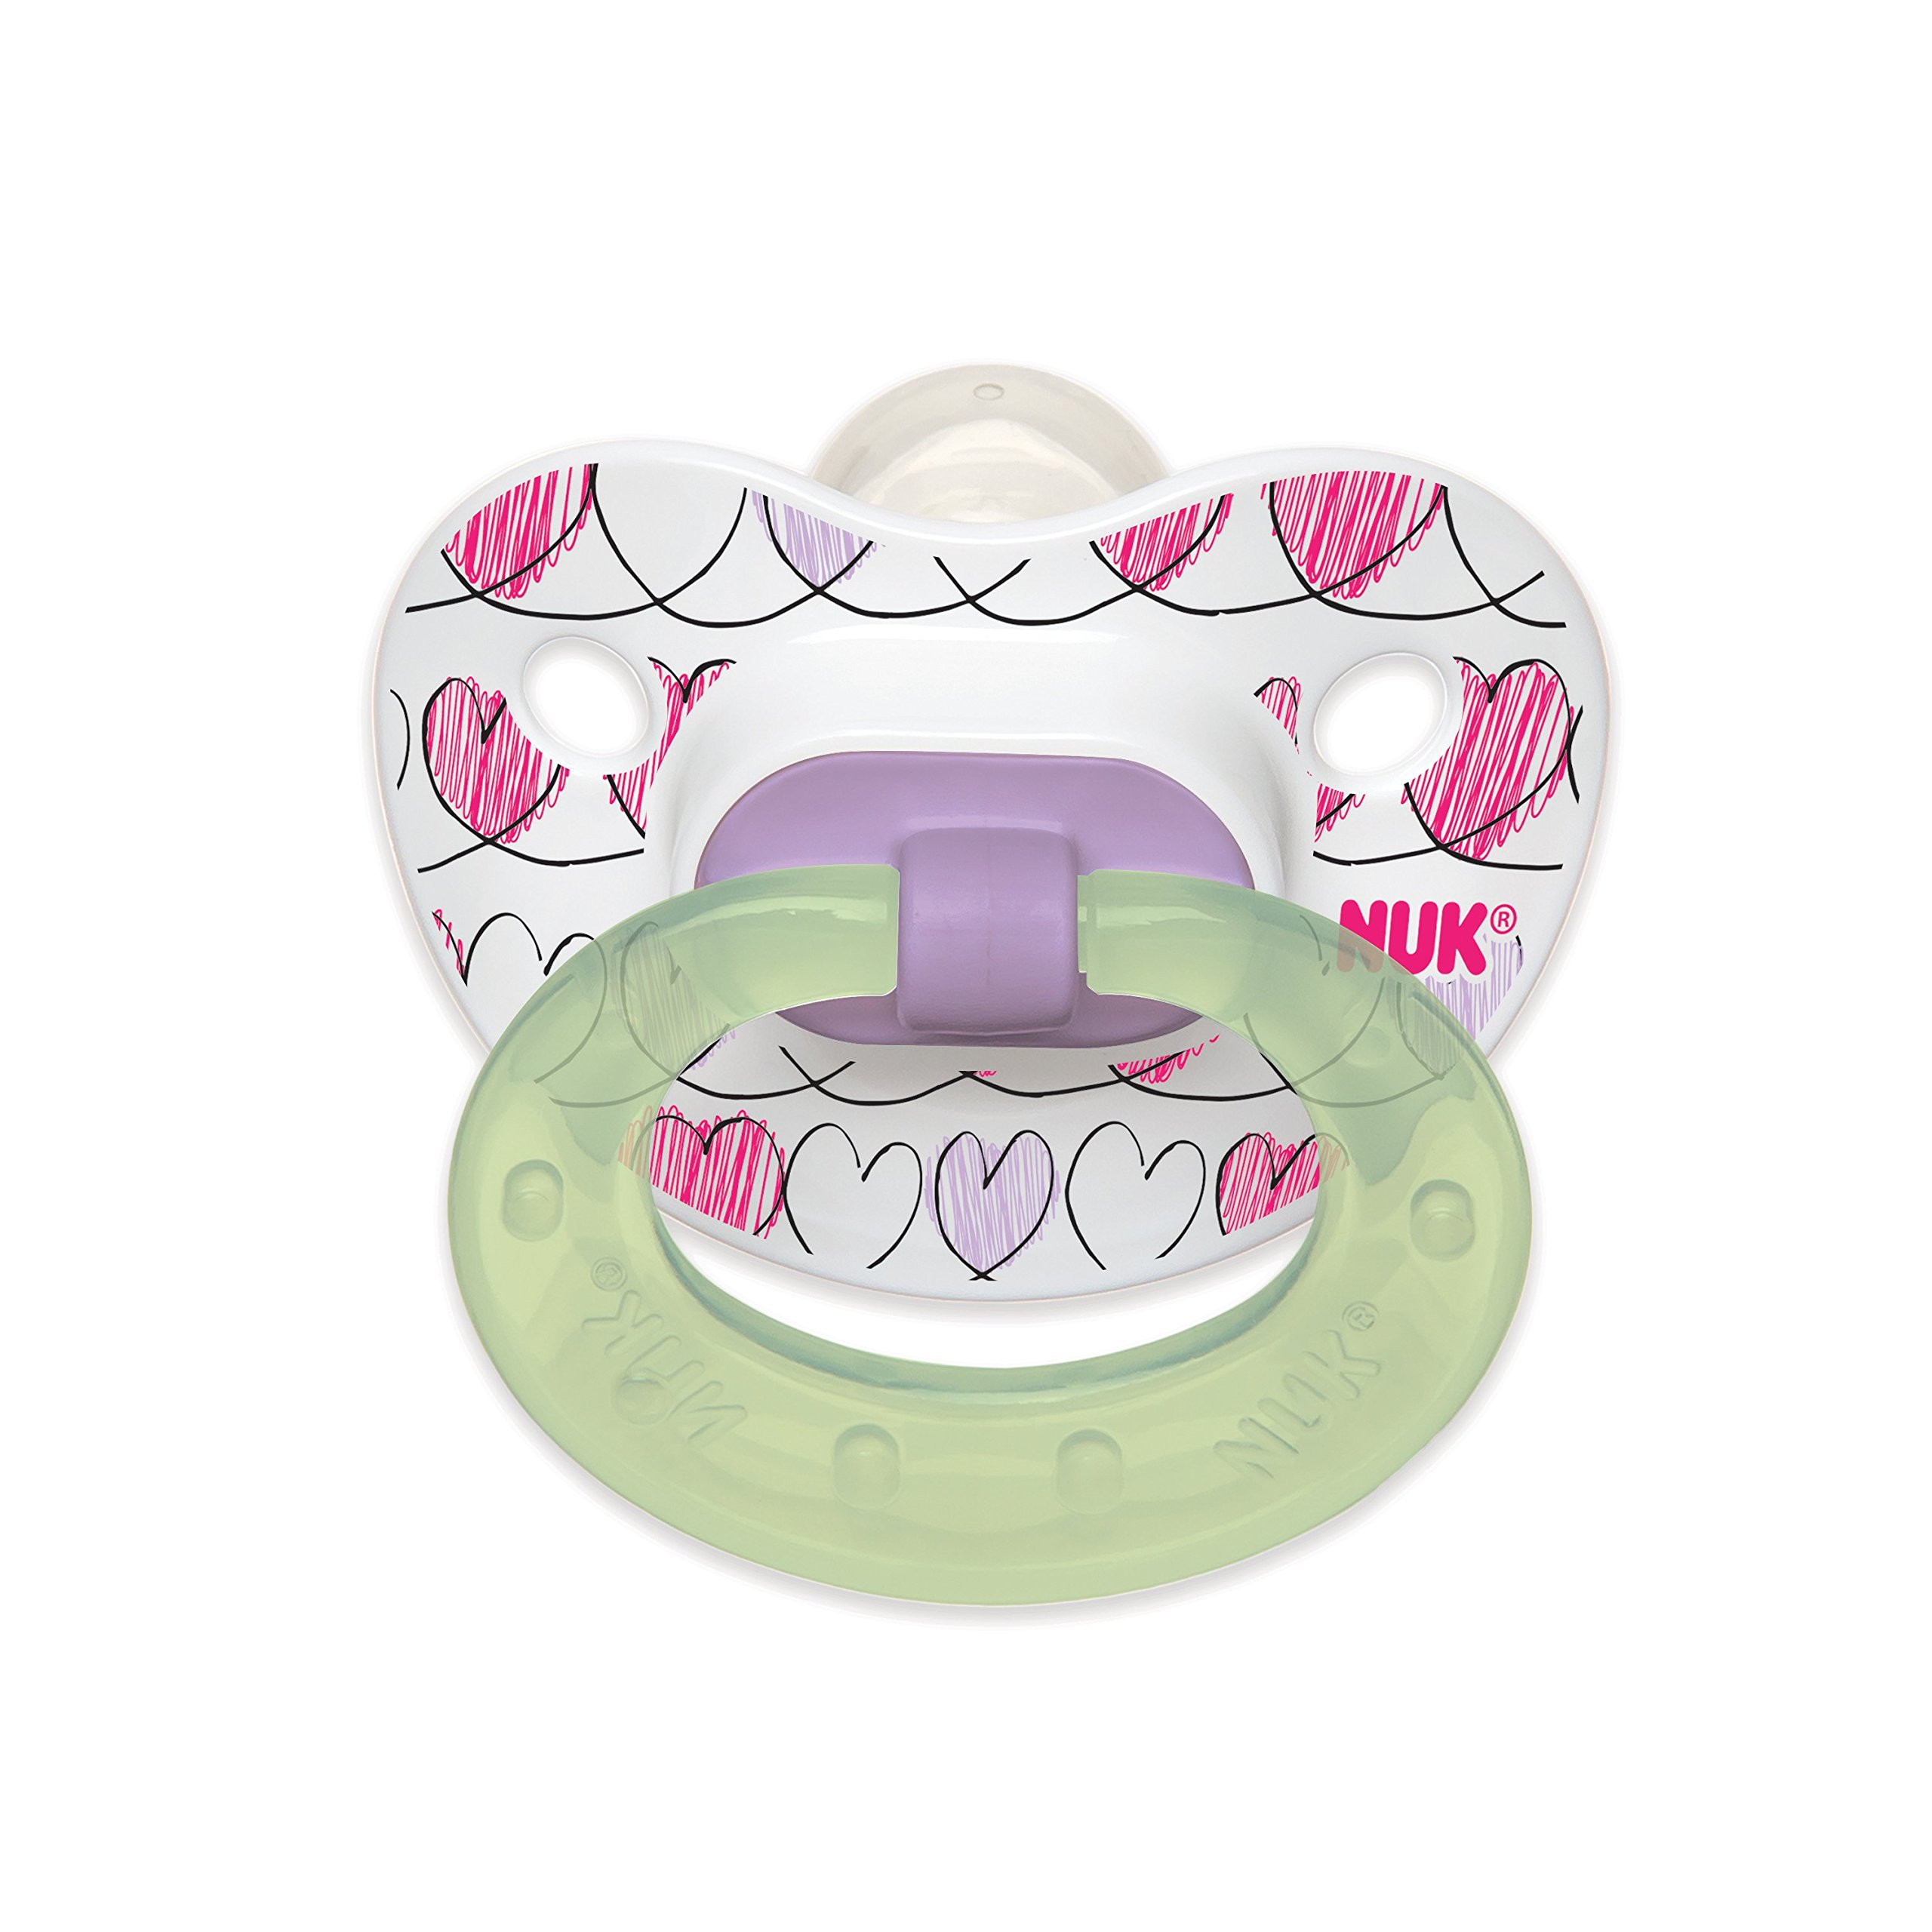 Amazon.com : 4 NUK Binky Air Shield Orthodontic Pacifier, Girl ...